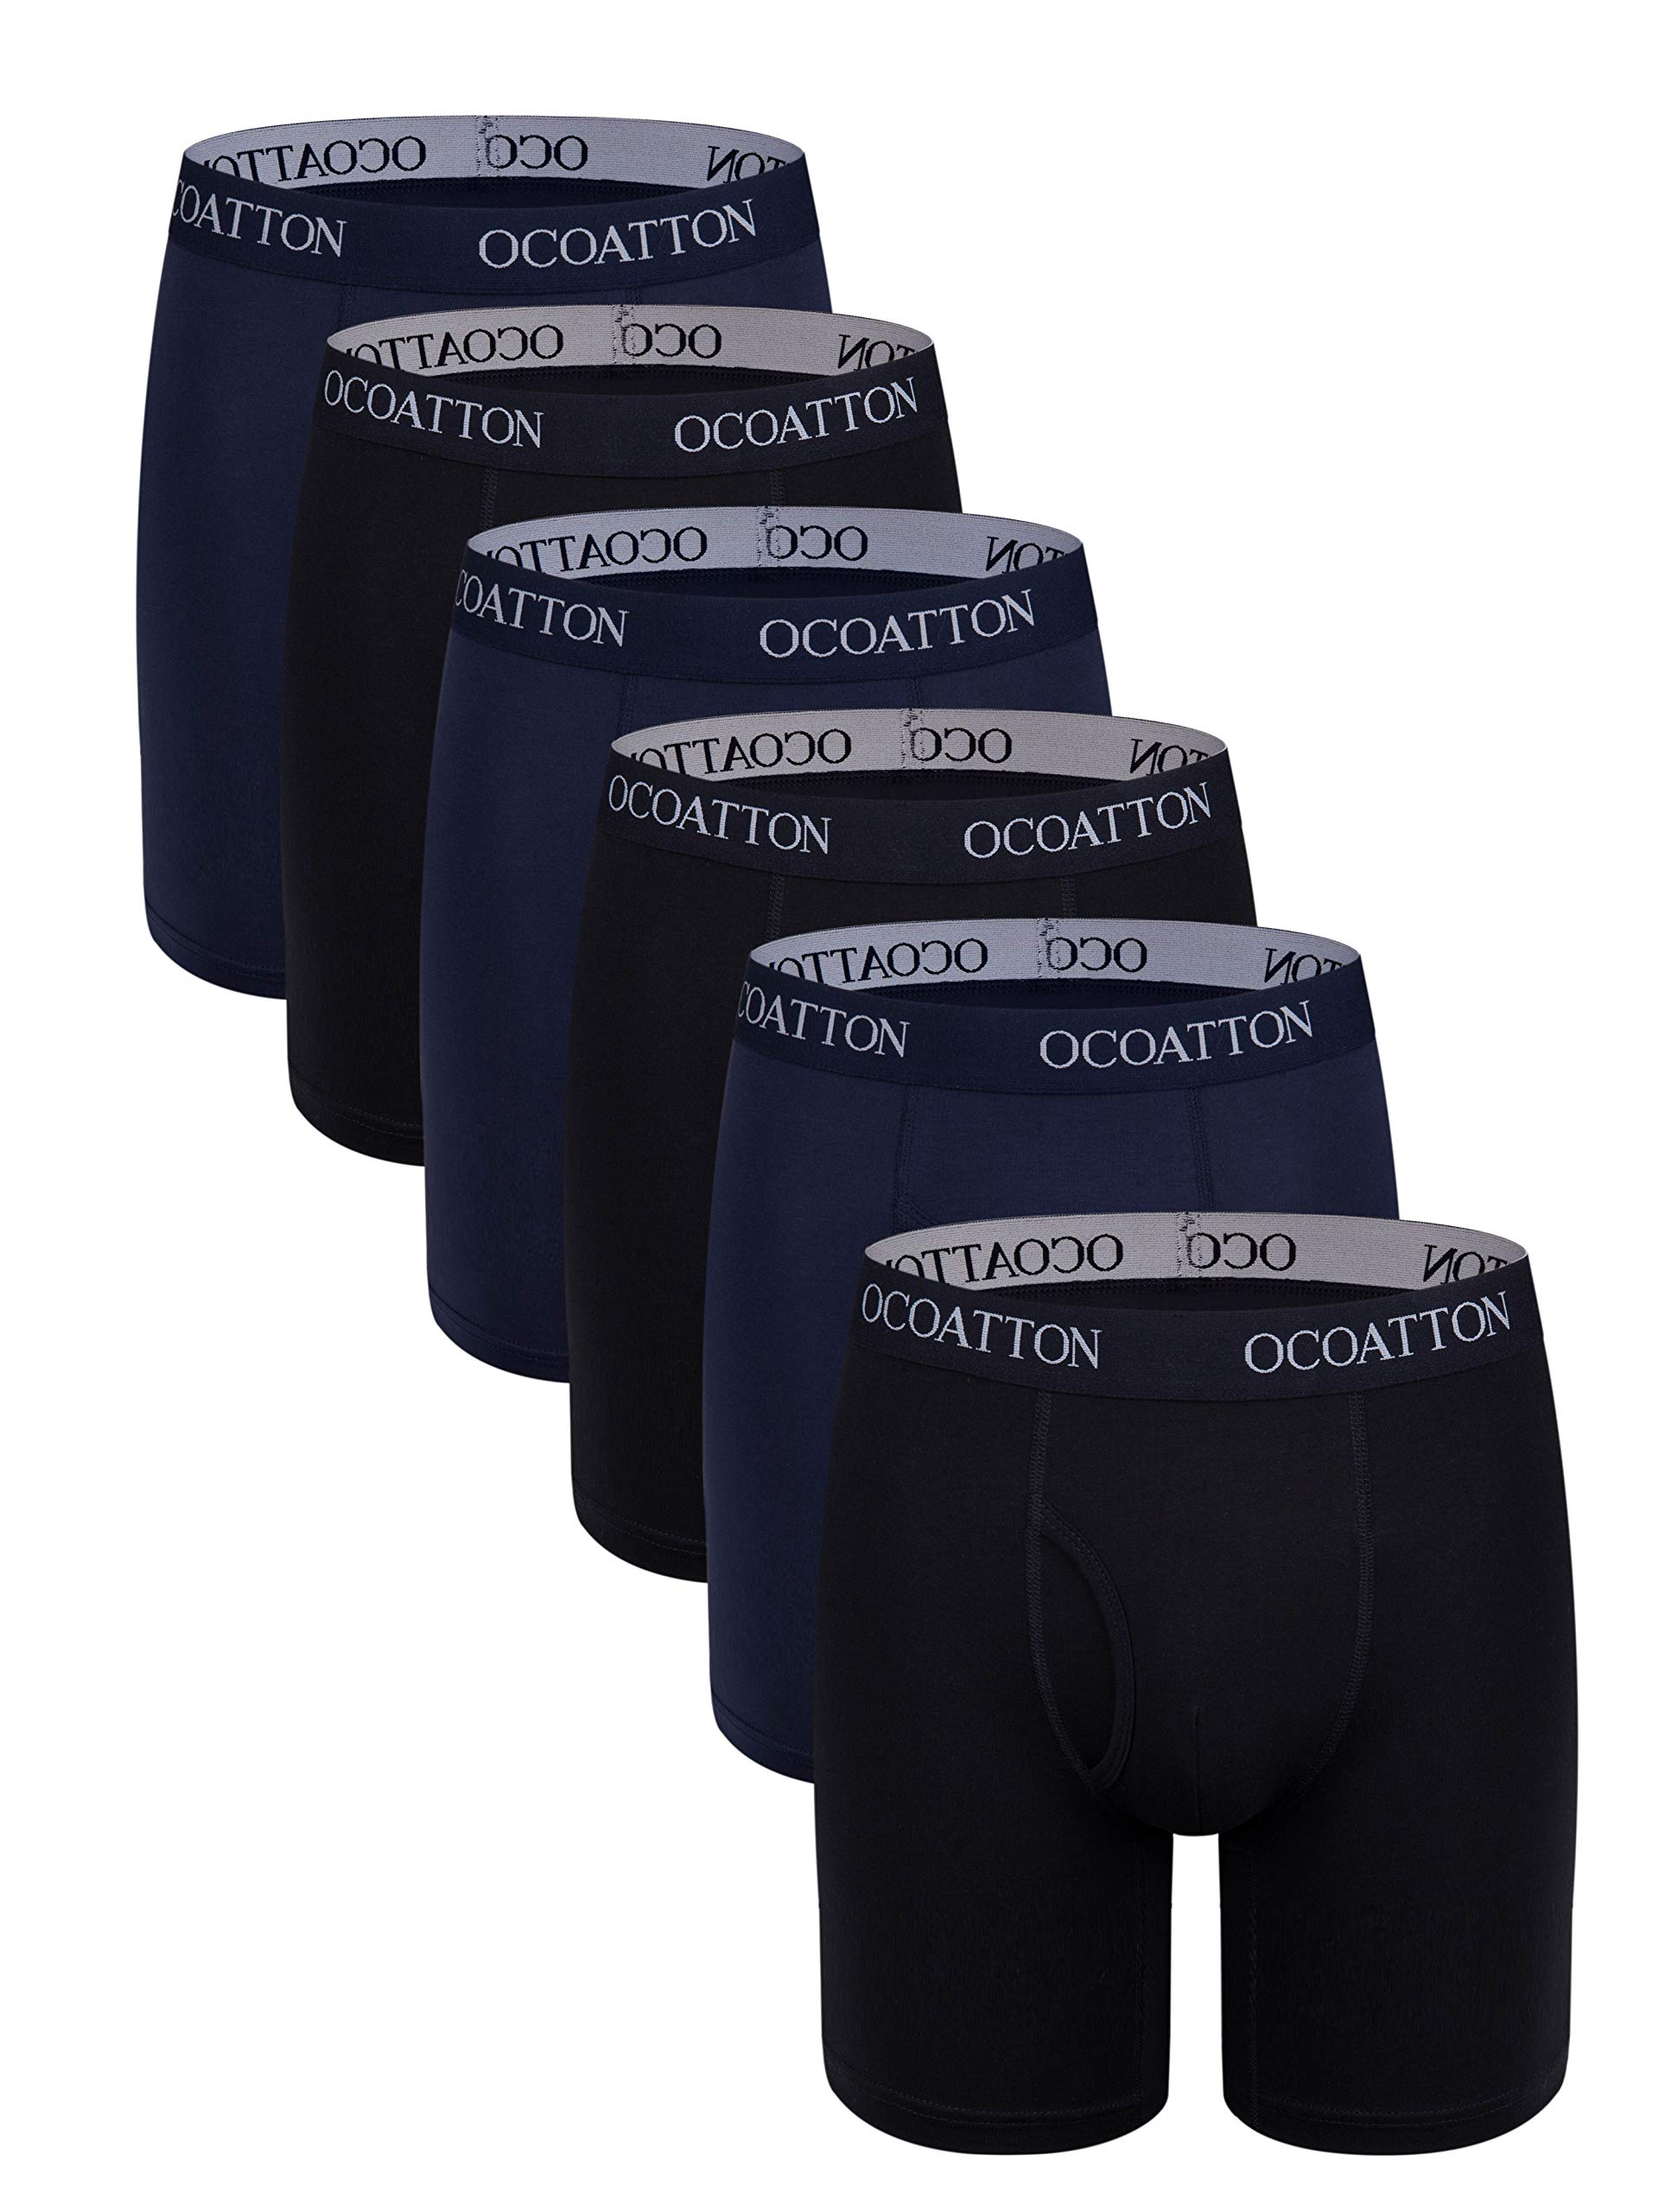 OCOATTON Men's Boxer Briefs Long Leg Big and Tall Combed Cotton Underwear Open Fly 6-Pack (3black/3blue, 6XL)